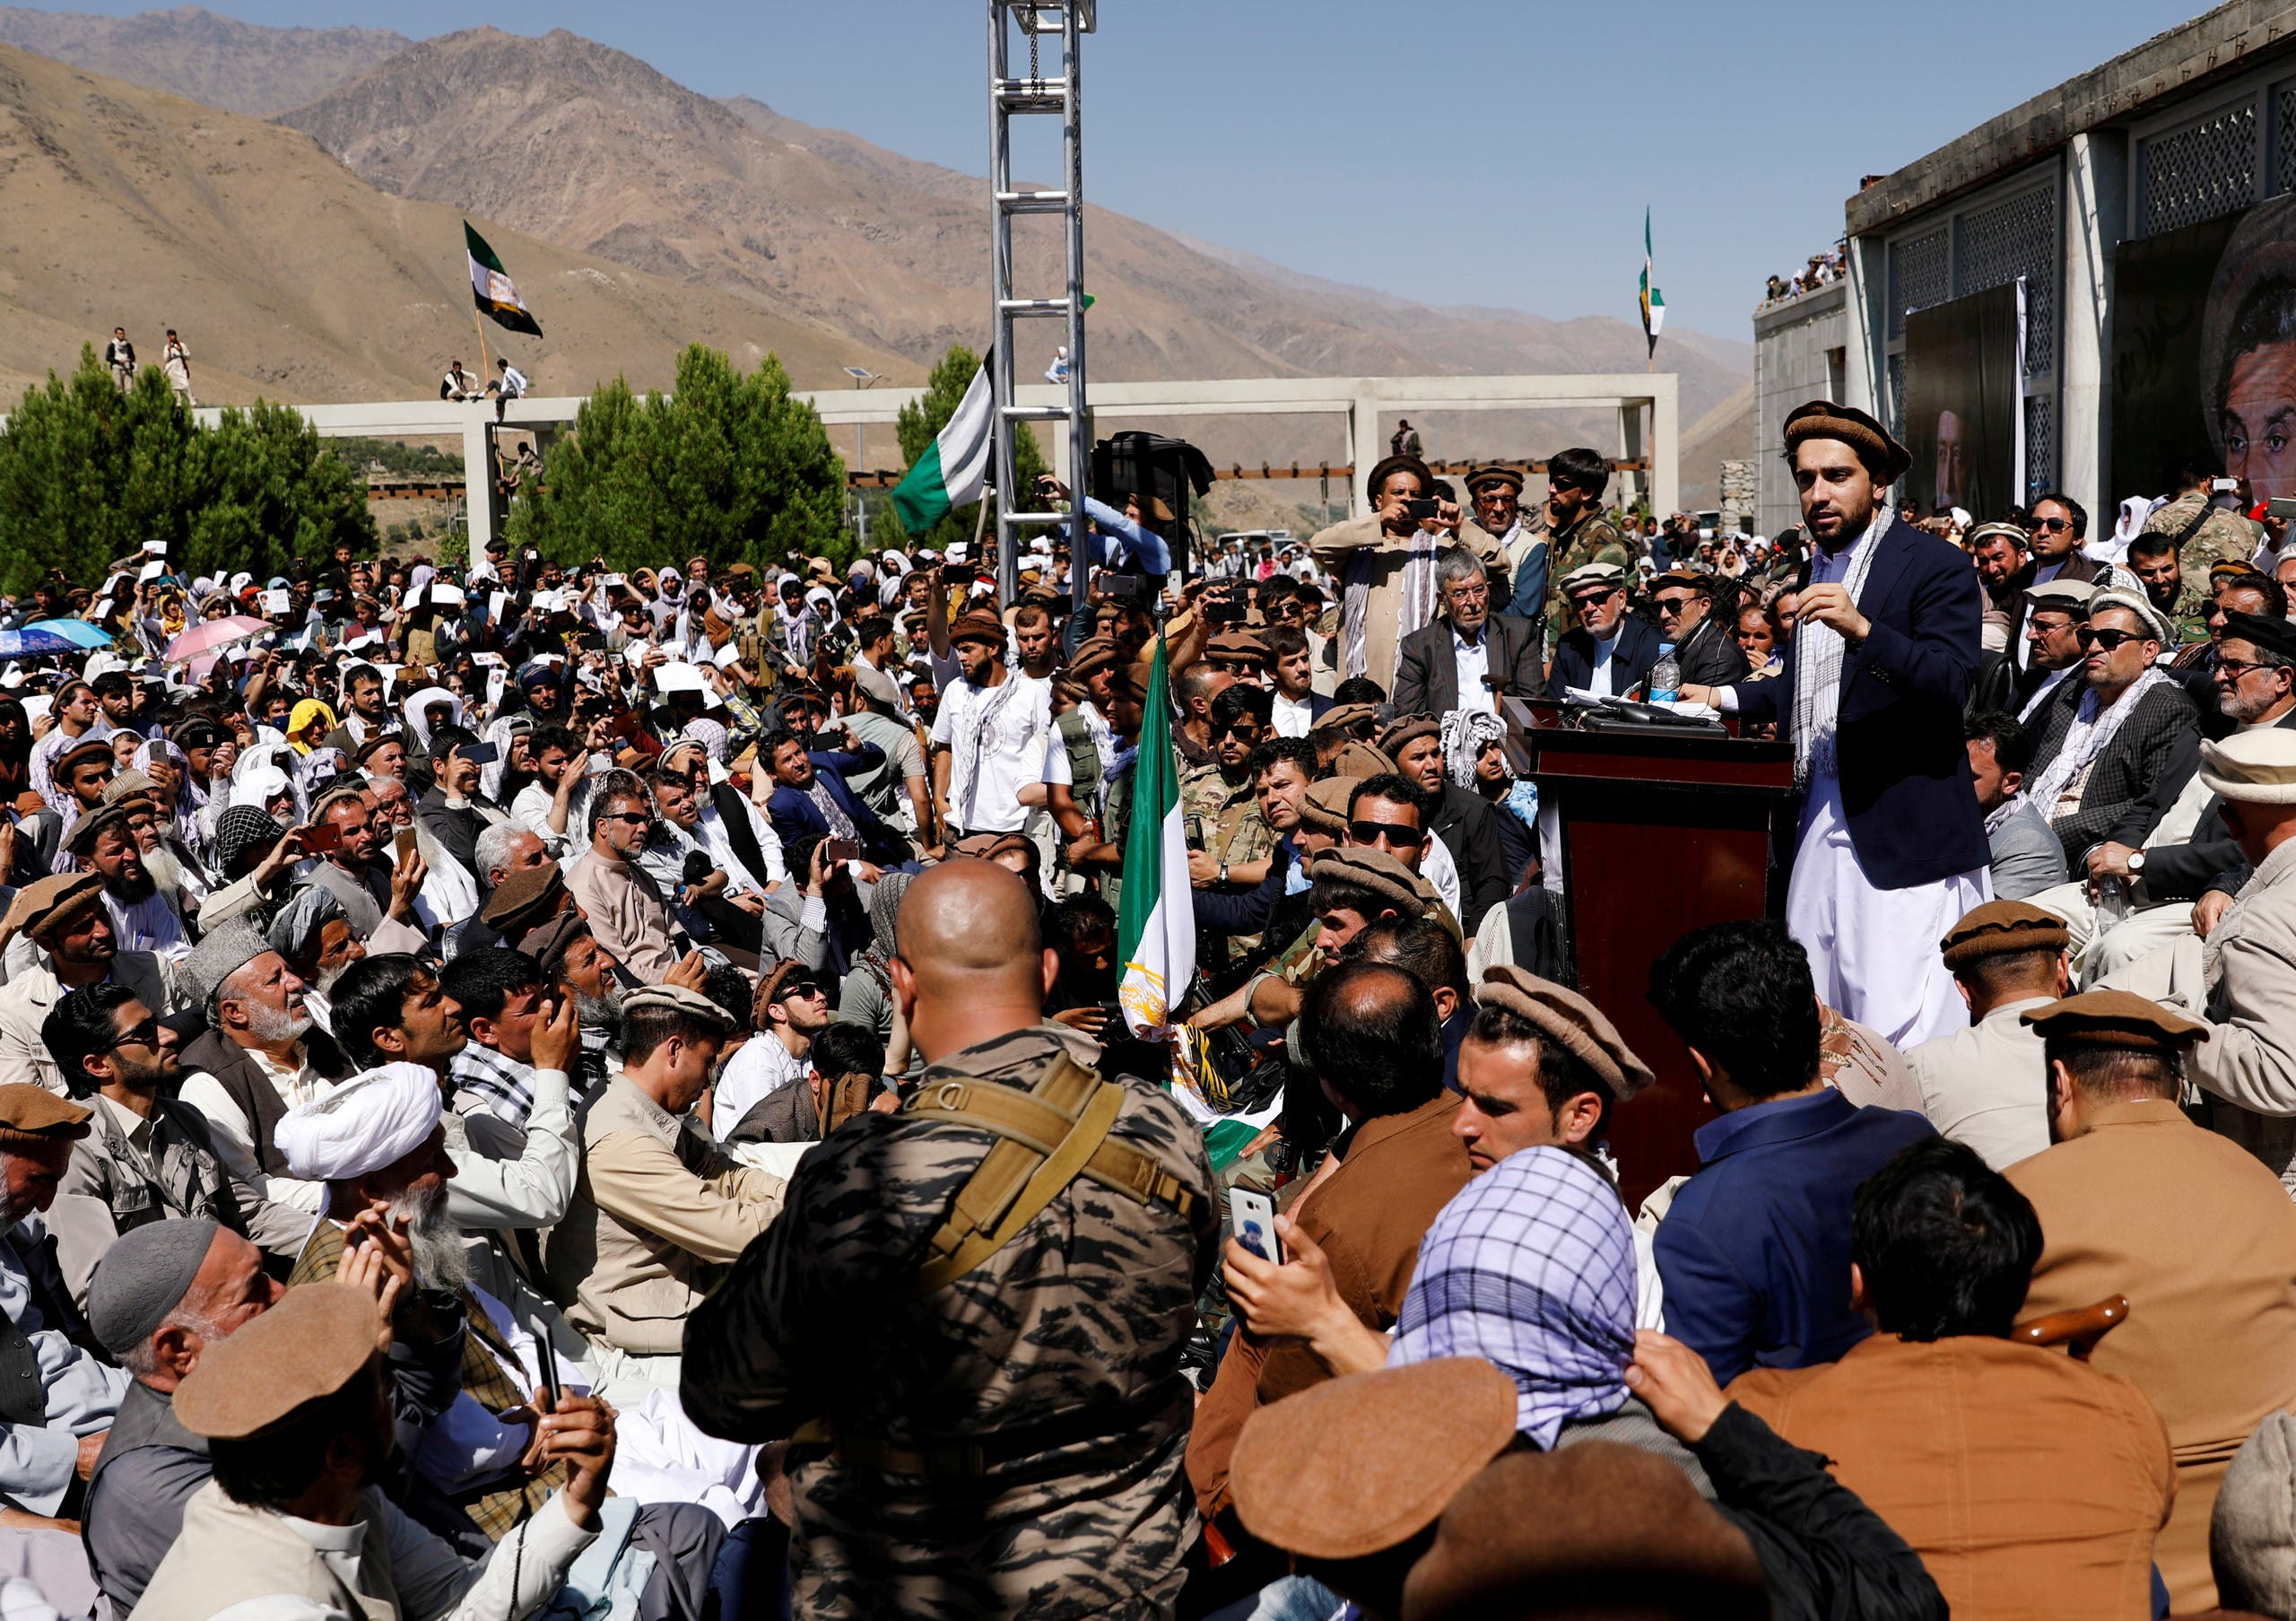 A relative of Ahmed Masoud: the Taliban did not control all of Panjshir